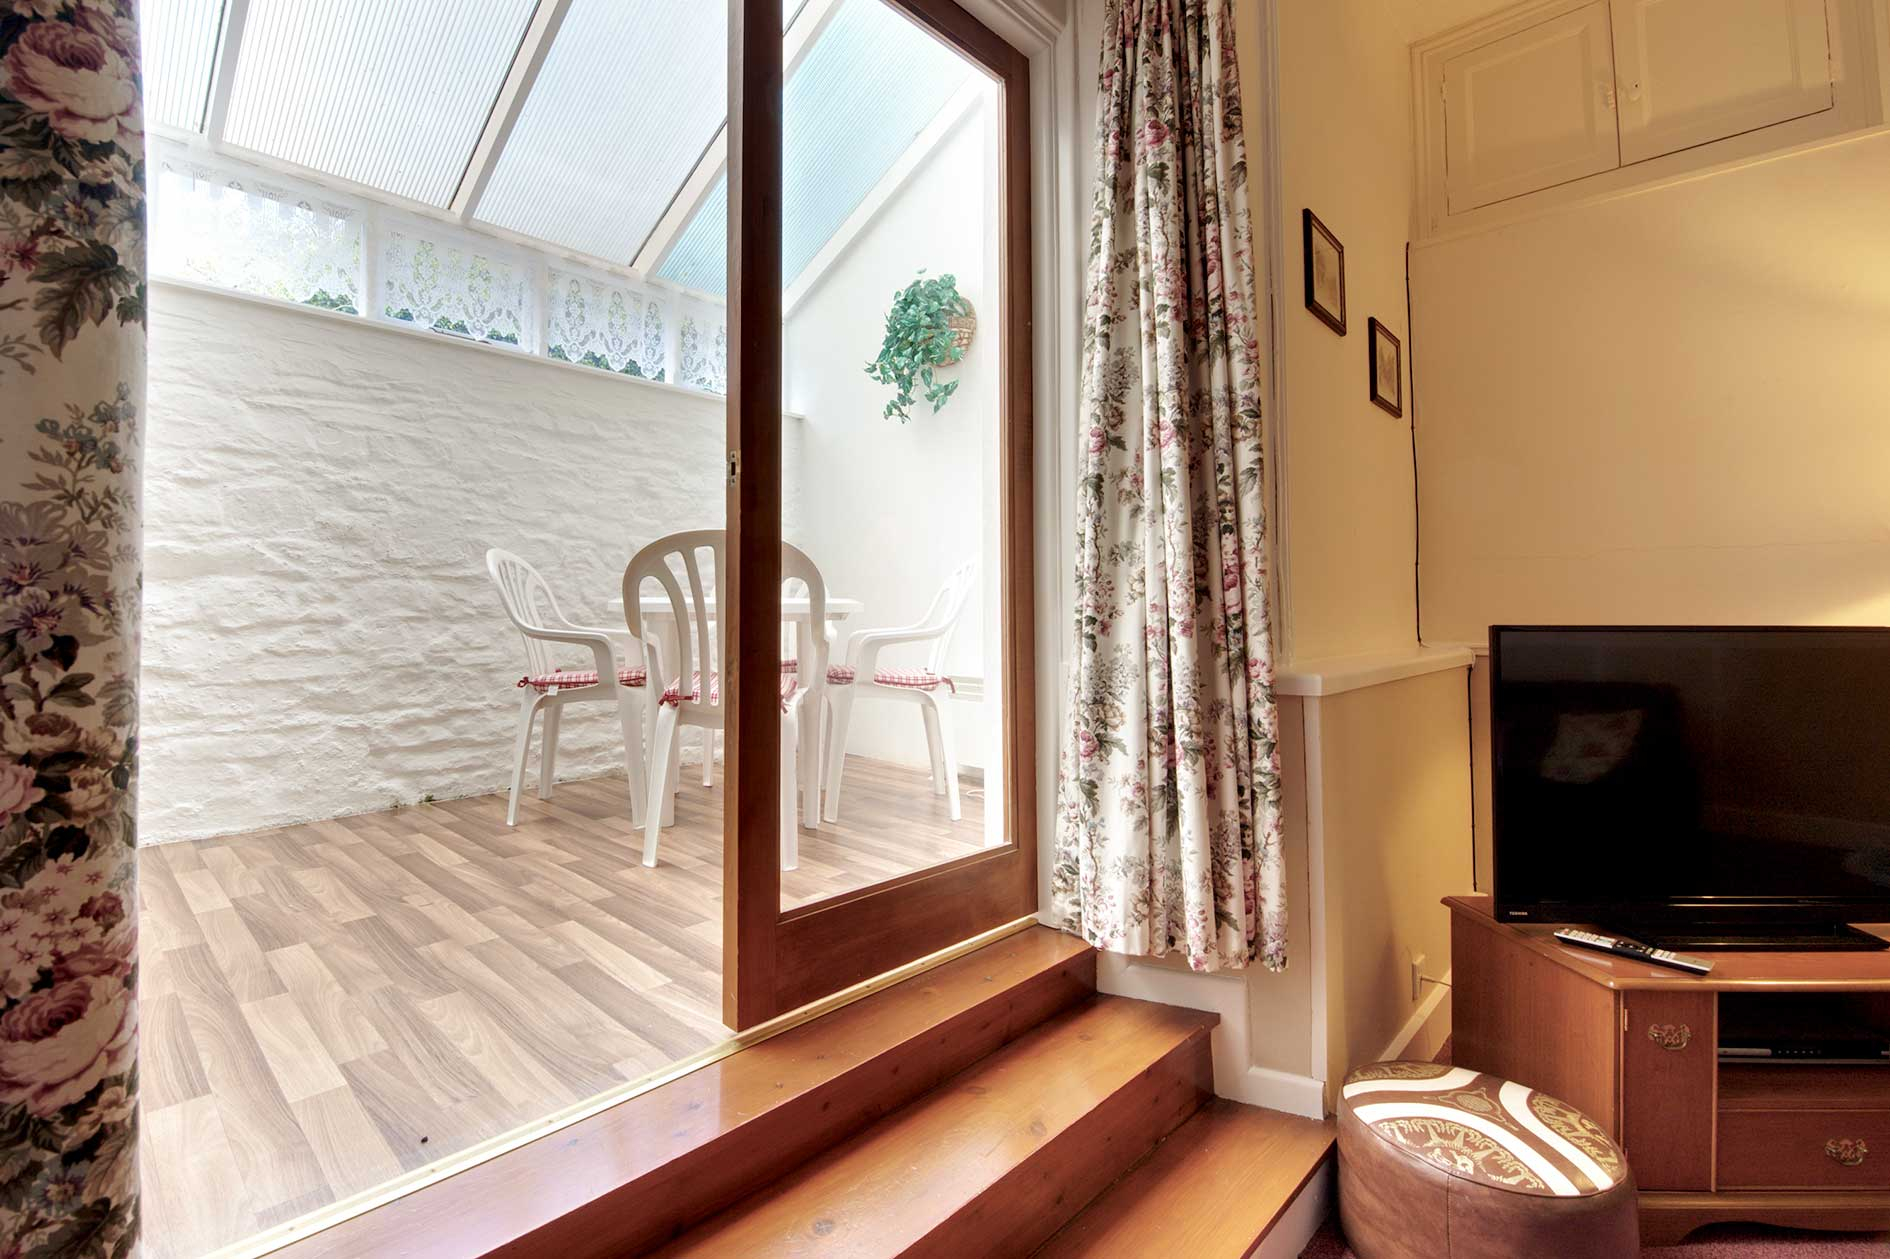 Glass Doors Leading To Small Conservatory With White Chairs And Table